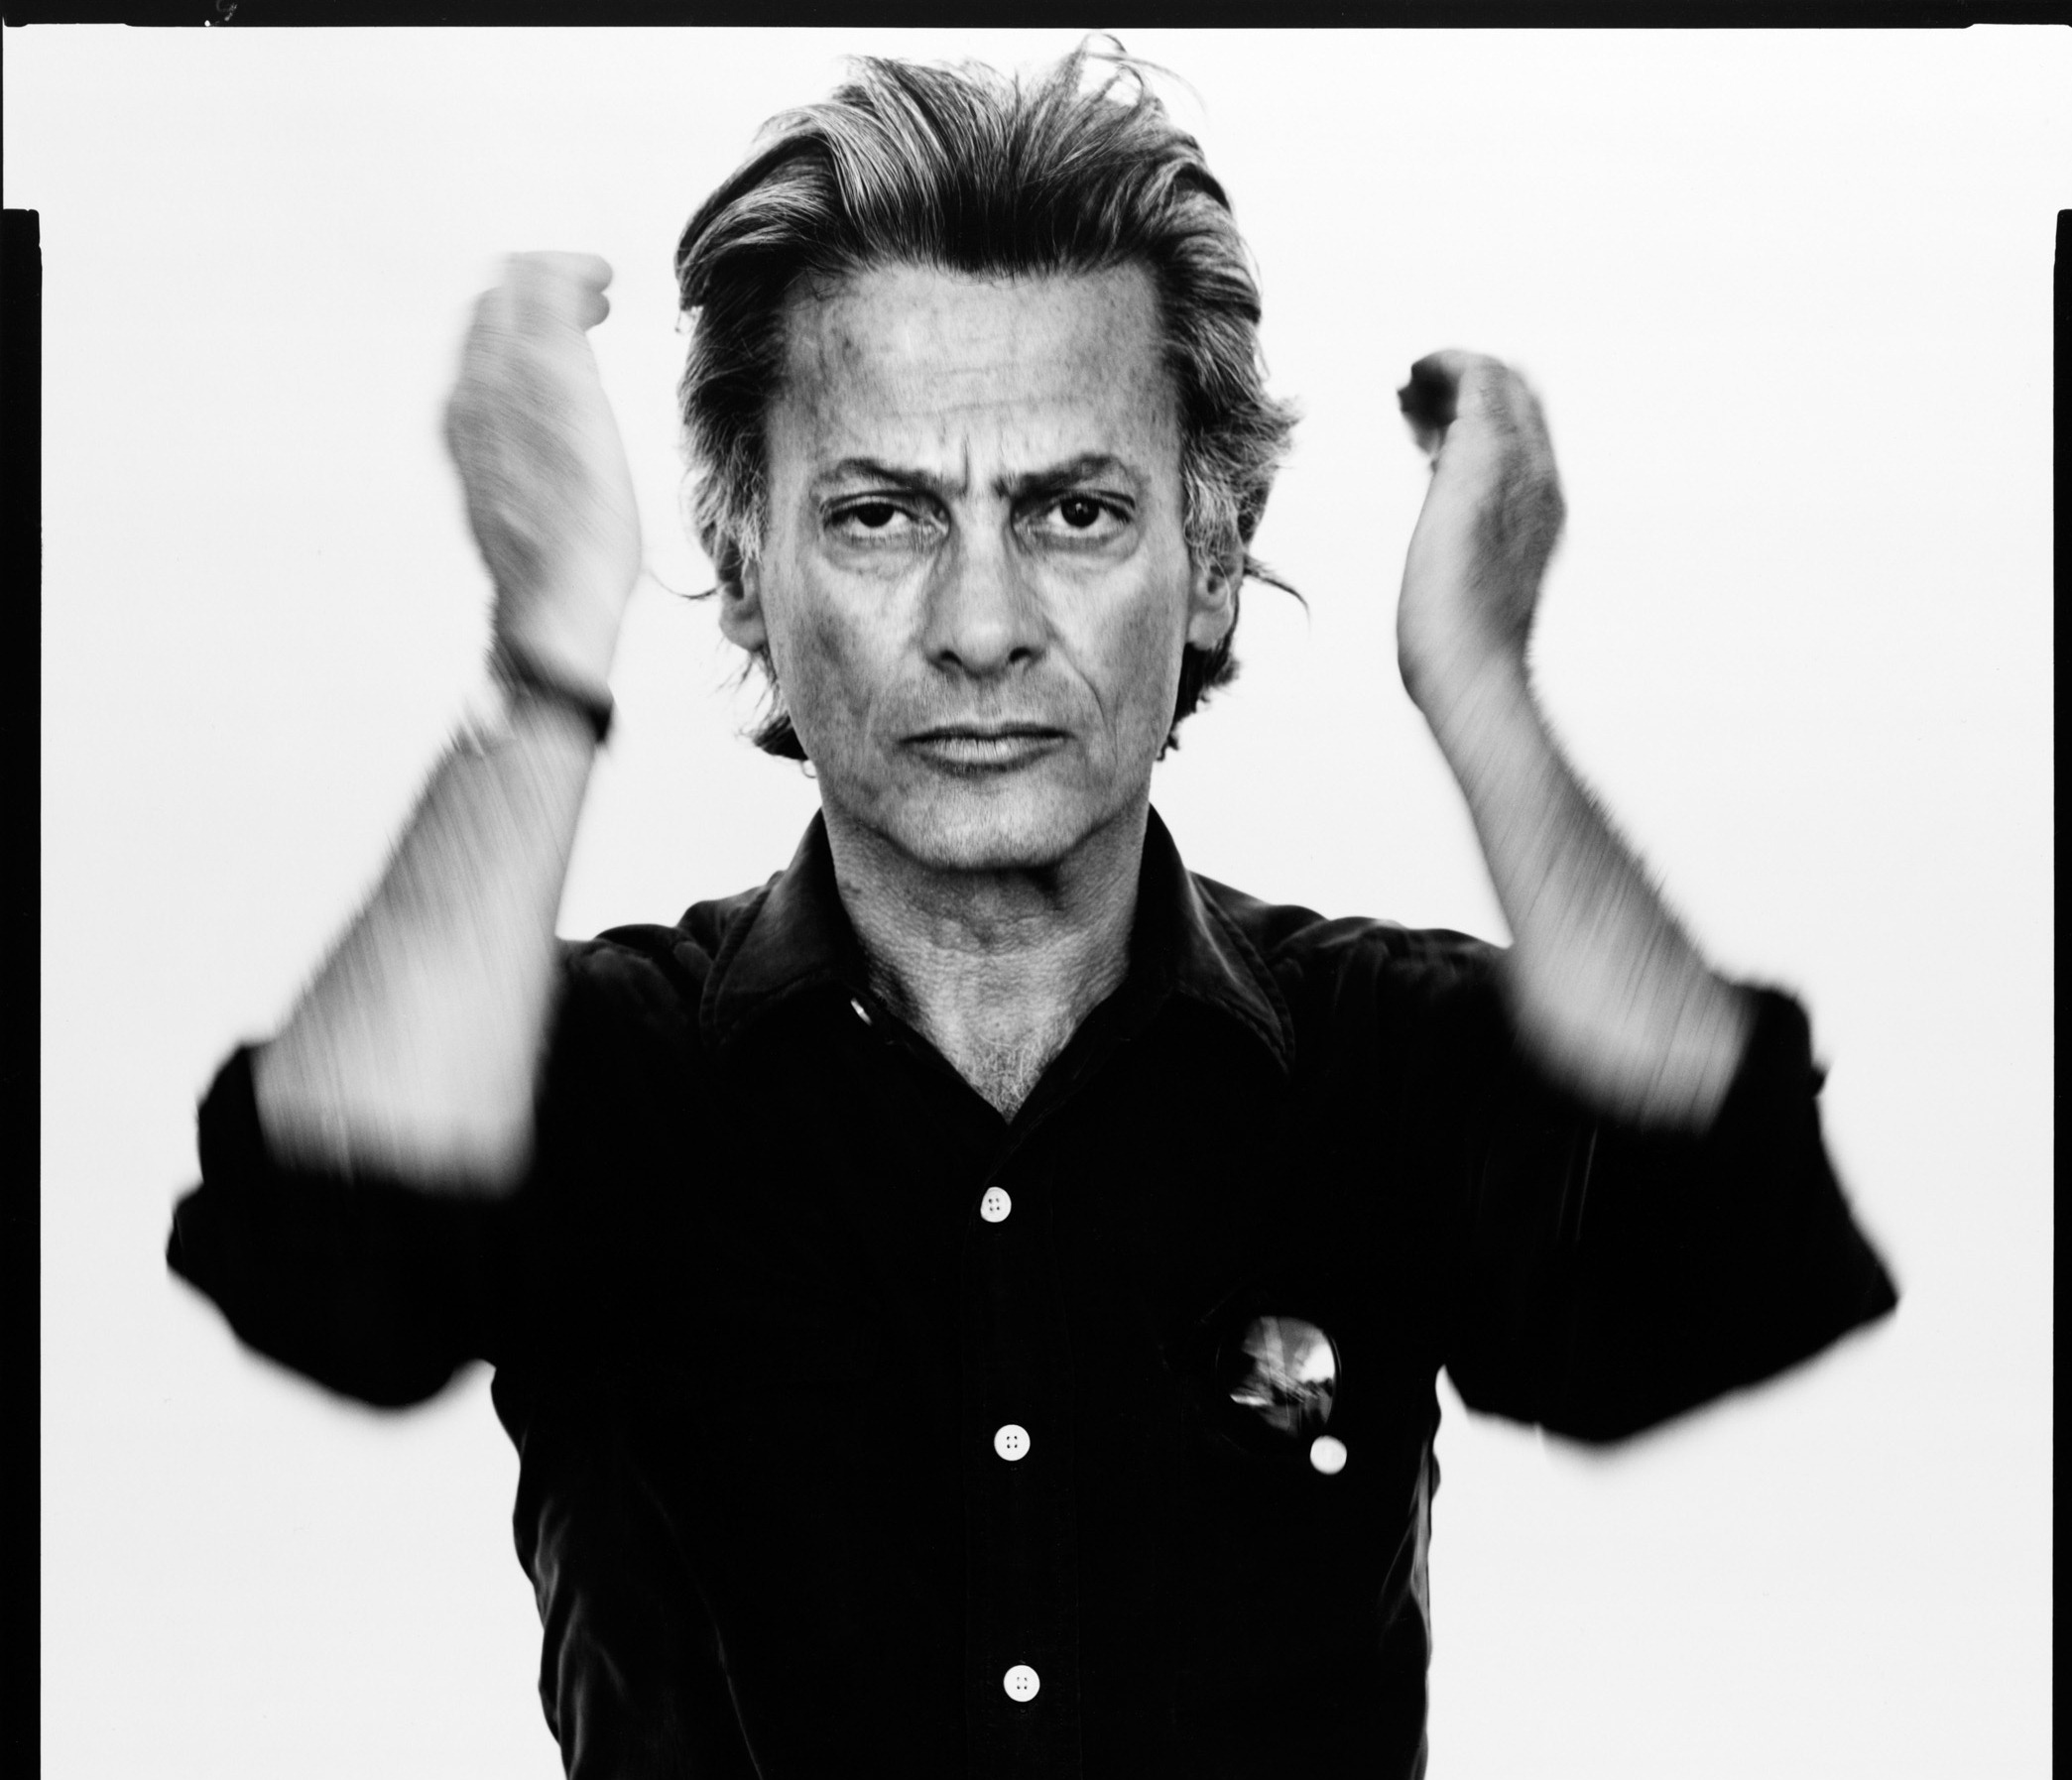 Richard Avedon, self-portrait, Photographer, Provo, Utah, August 20, 1980